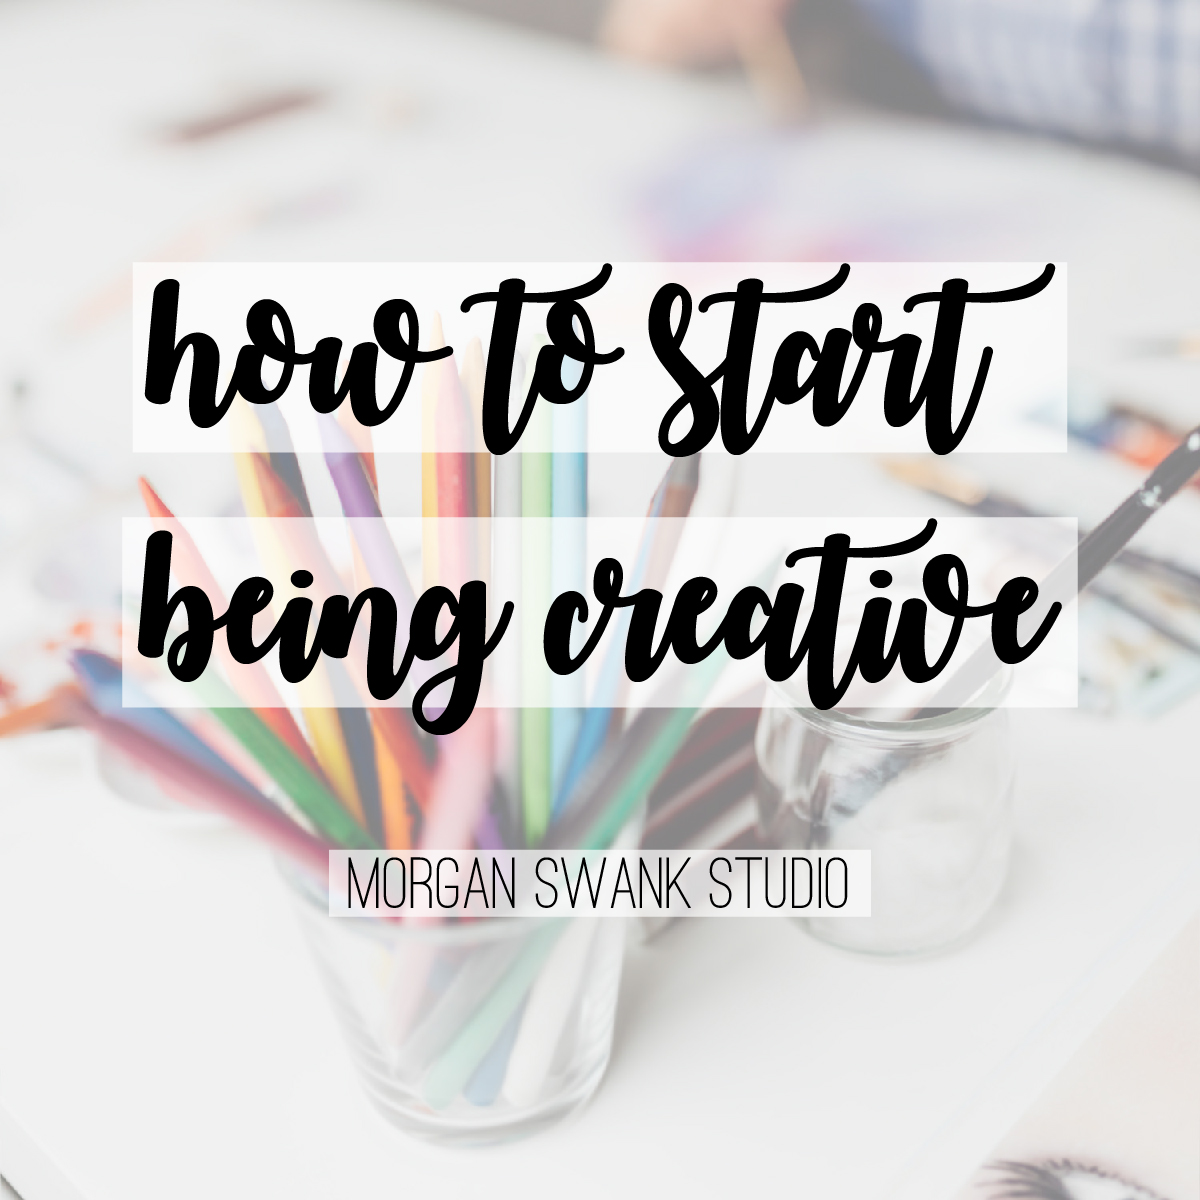 how-to-start-being-creative.jpg